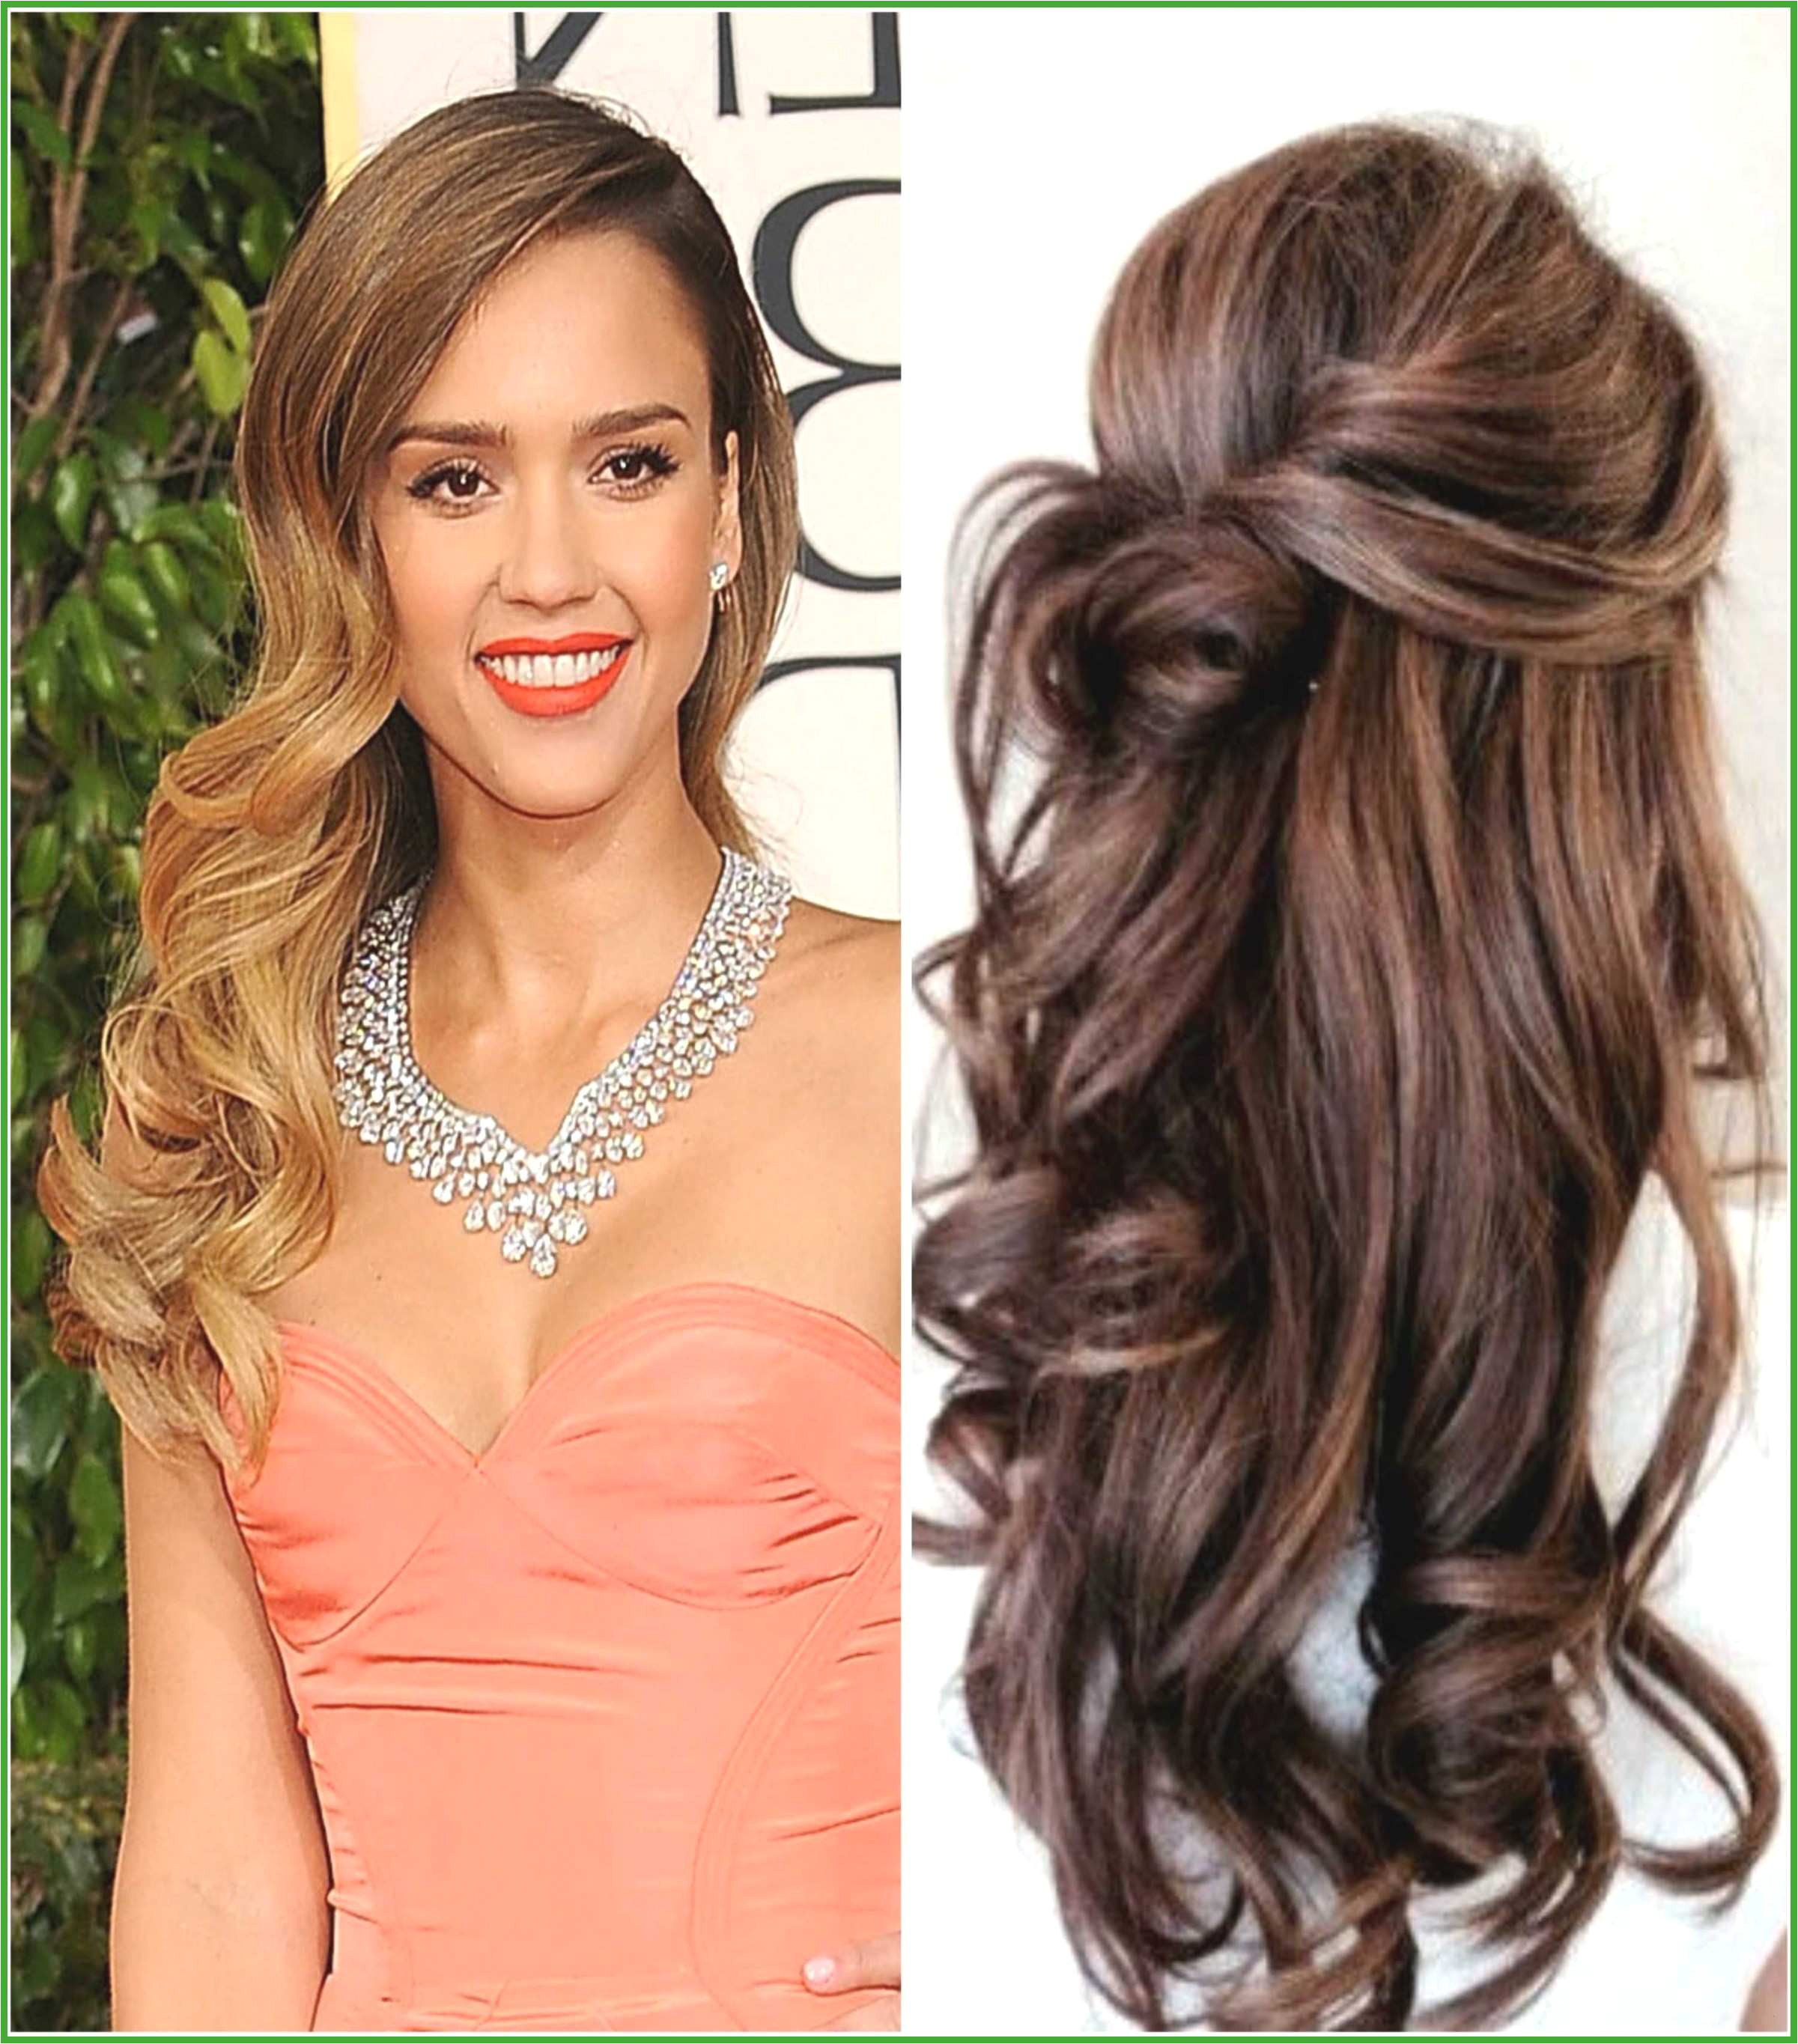 Hairstyles Name For Girls Luxury Hair Cuts For Girls Collection Hairstyles And Cuts Fresh Hairstyles